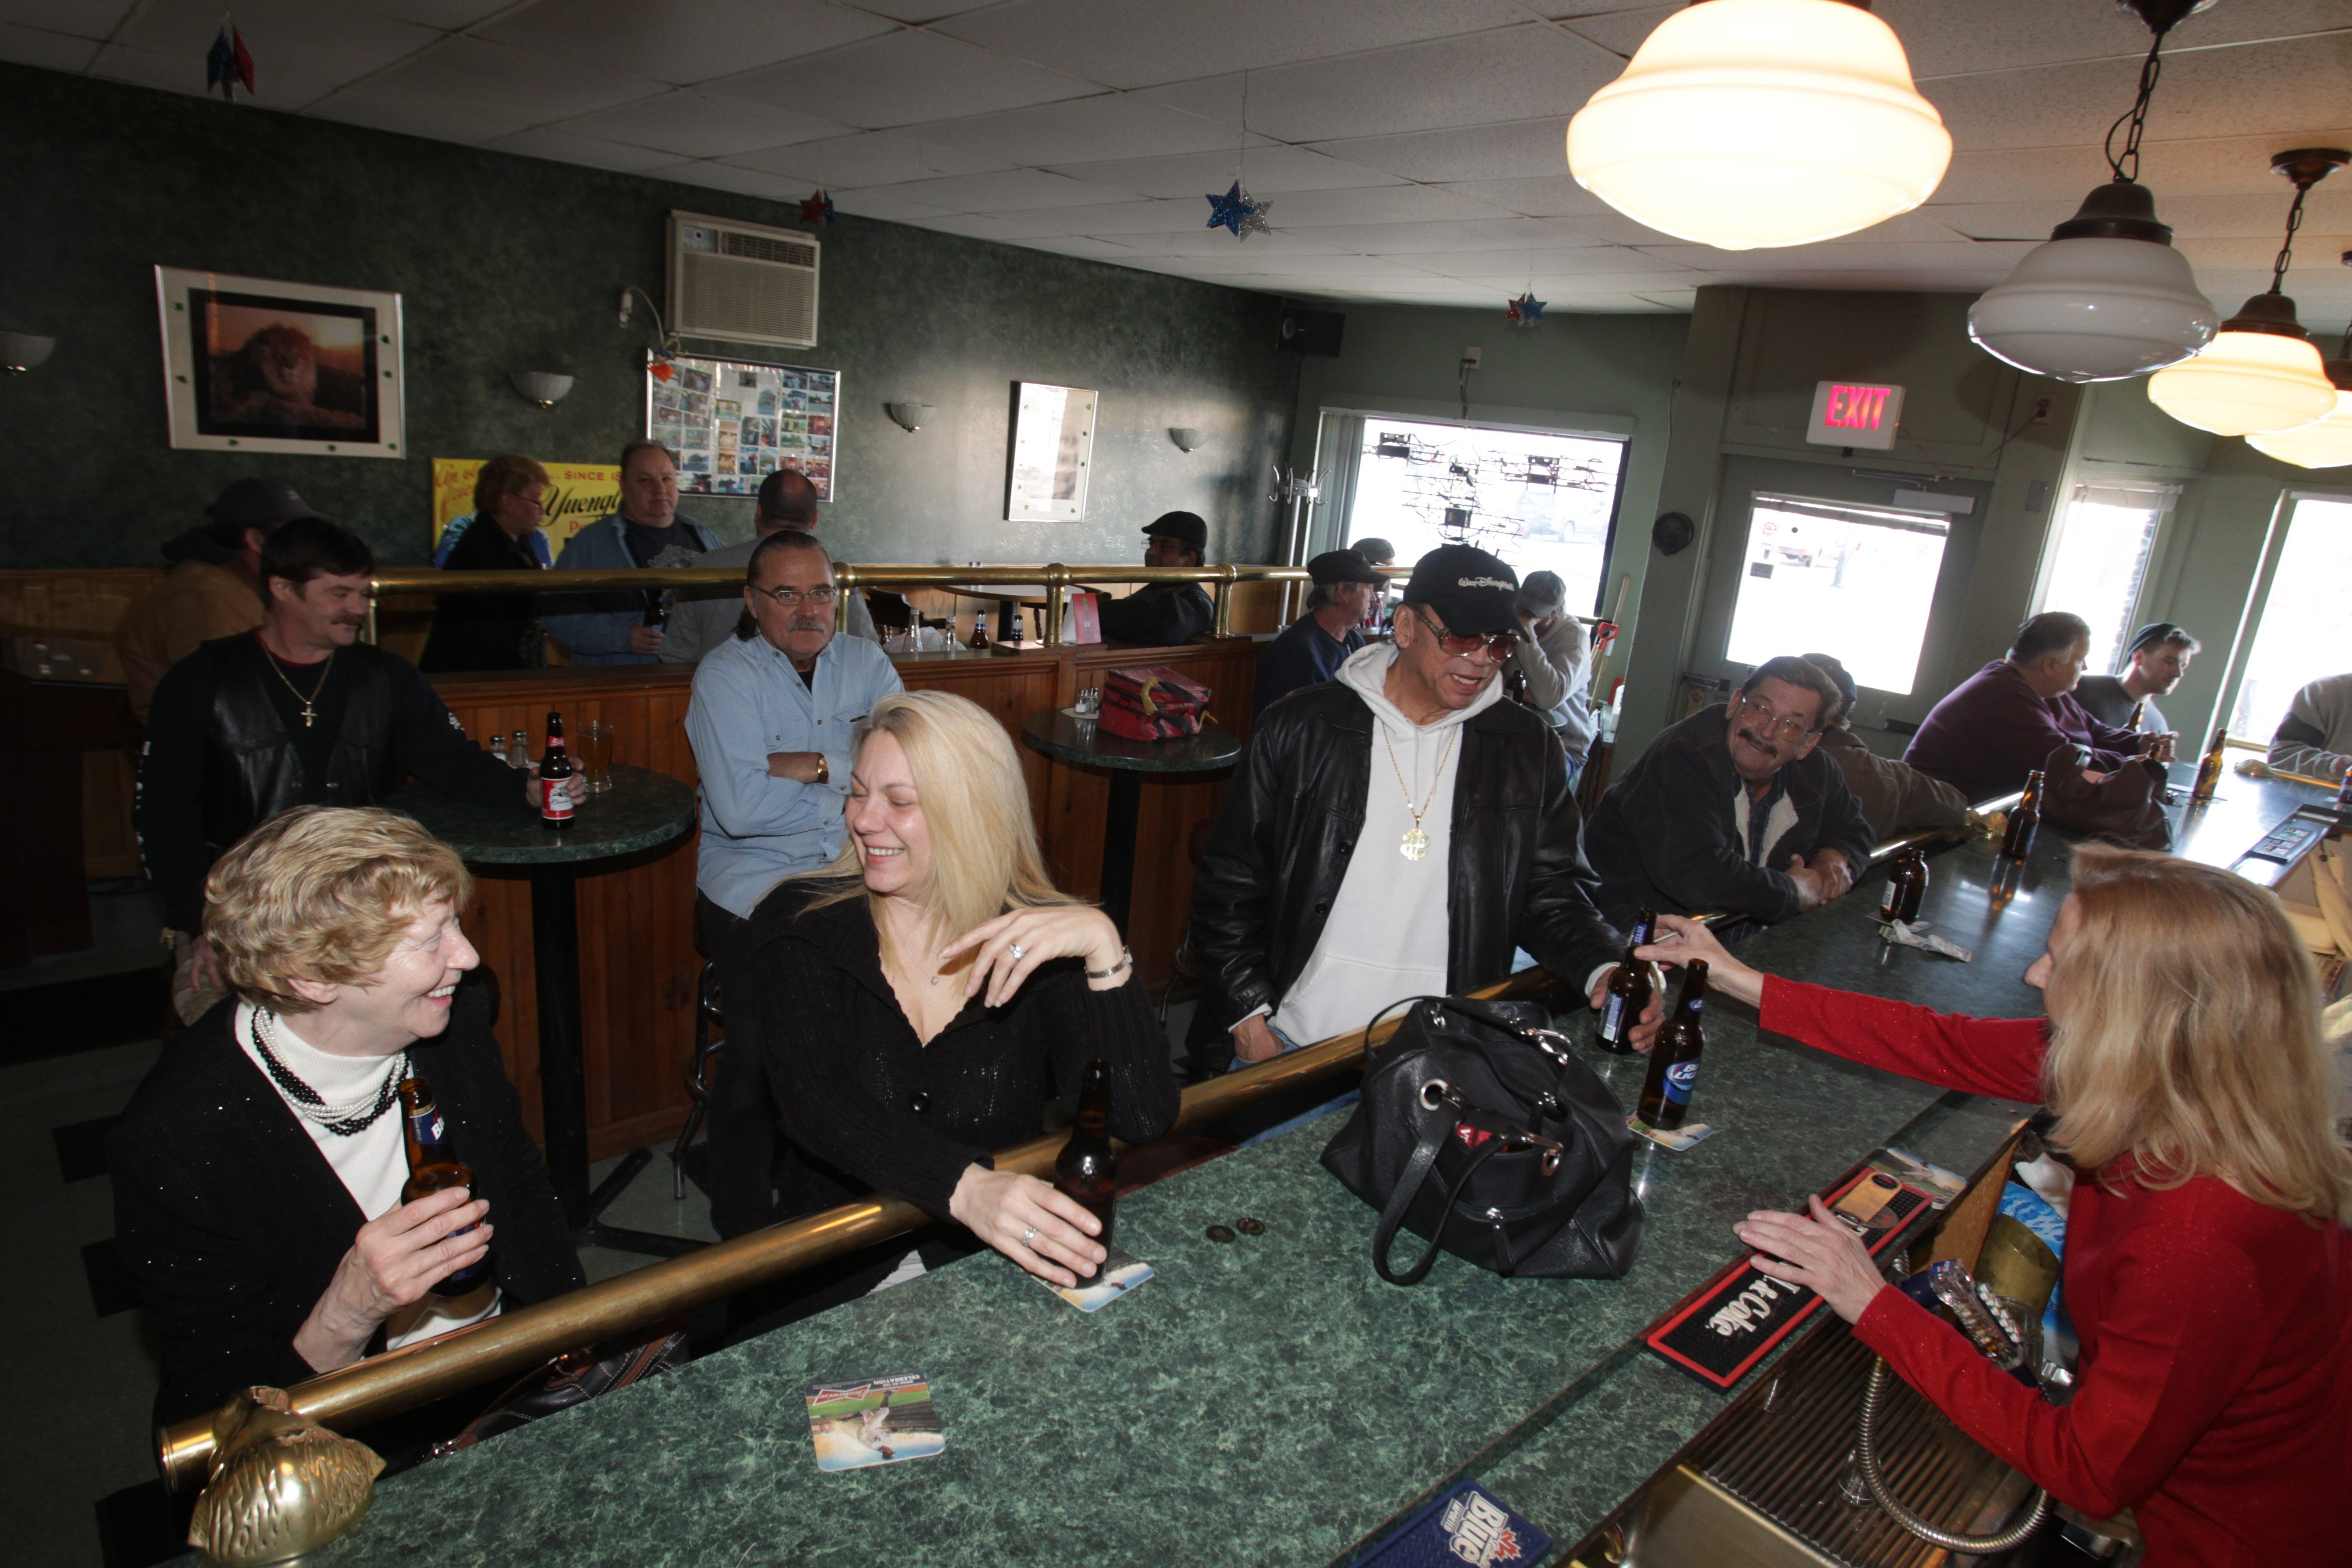 Barry's Bar and Grill on Amherst Street is a neighborhood favorite where folks go for cheap drinks and some good food.